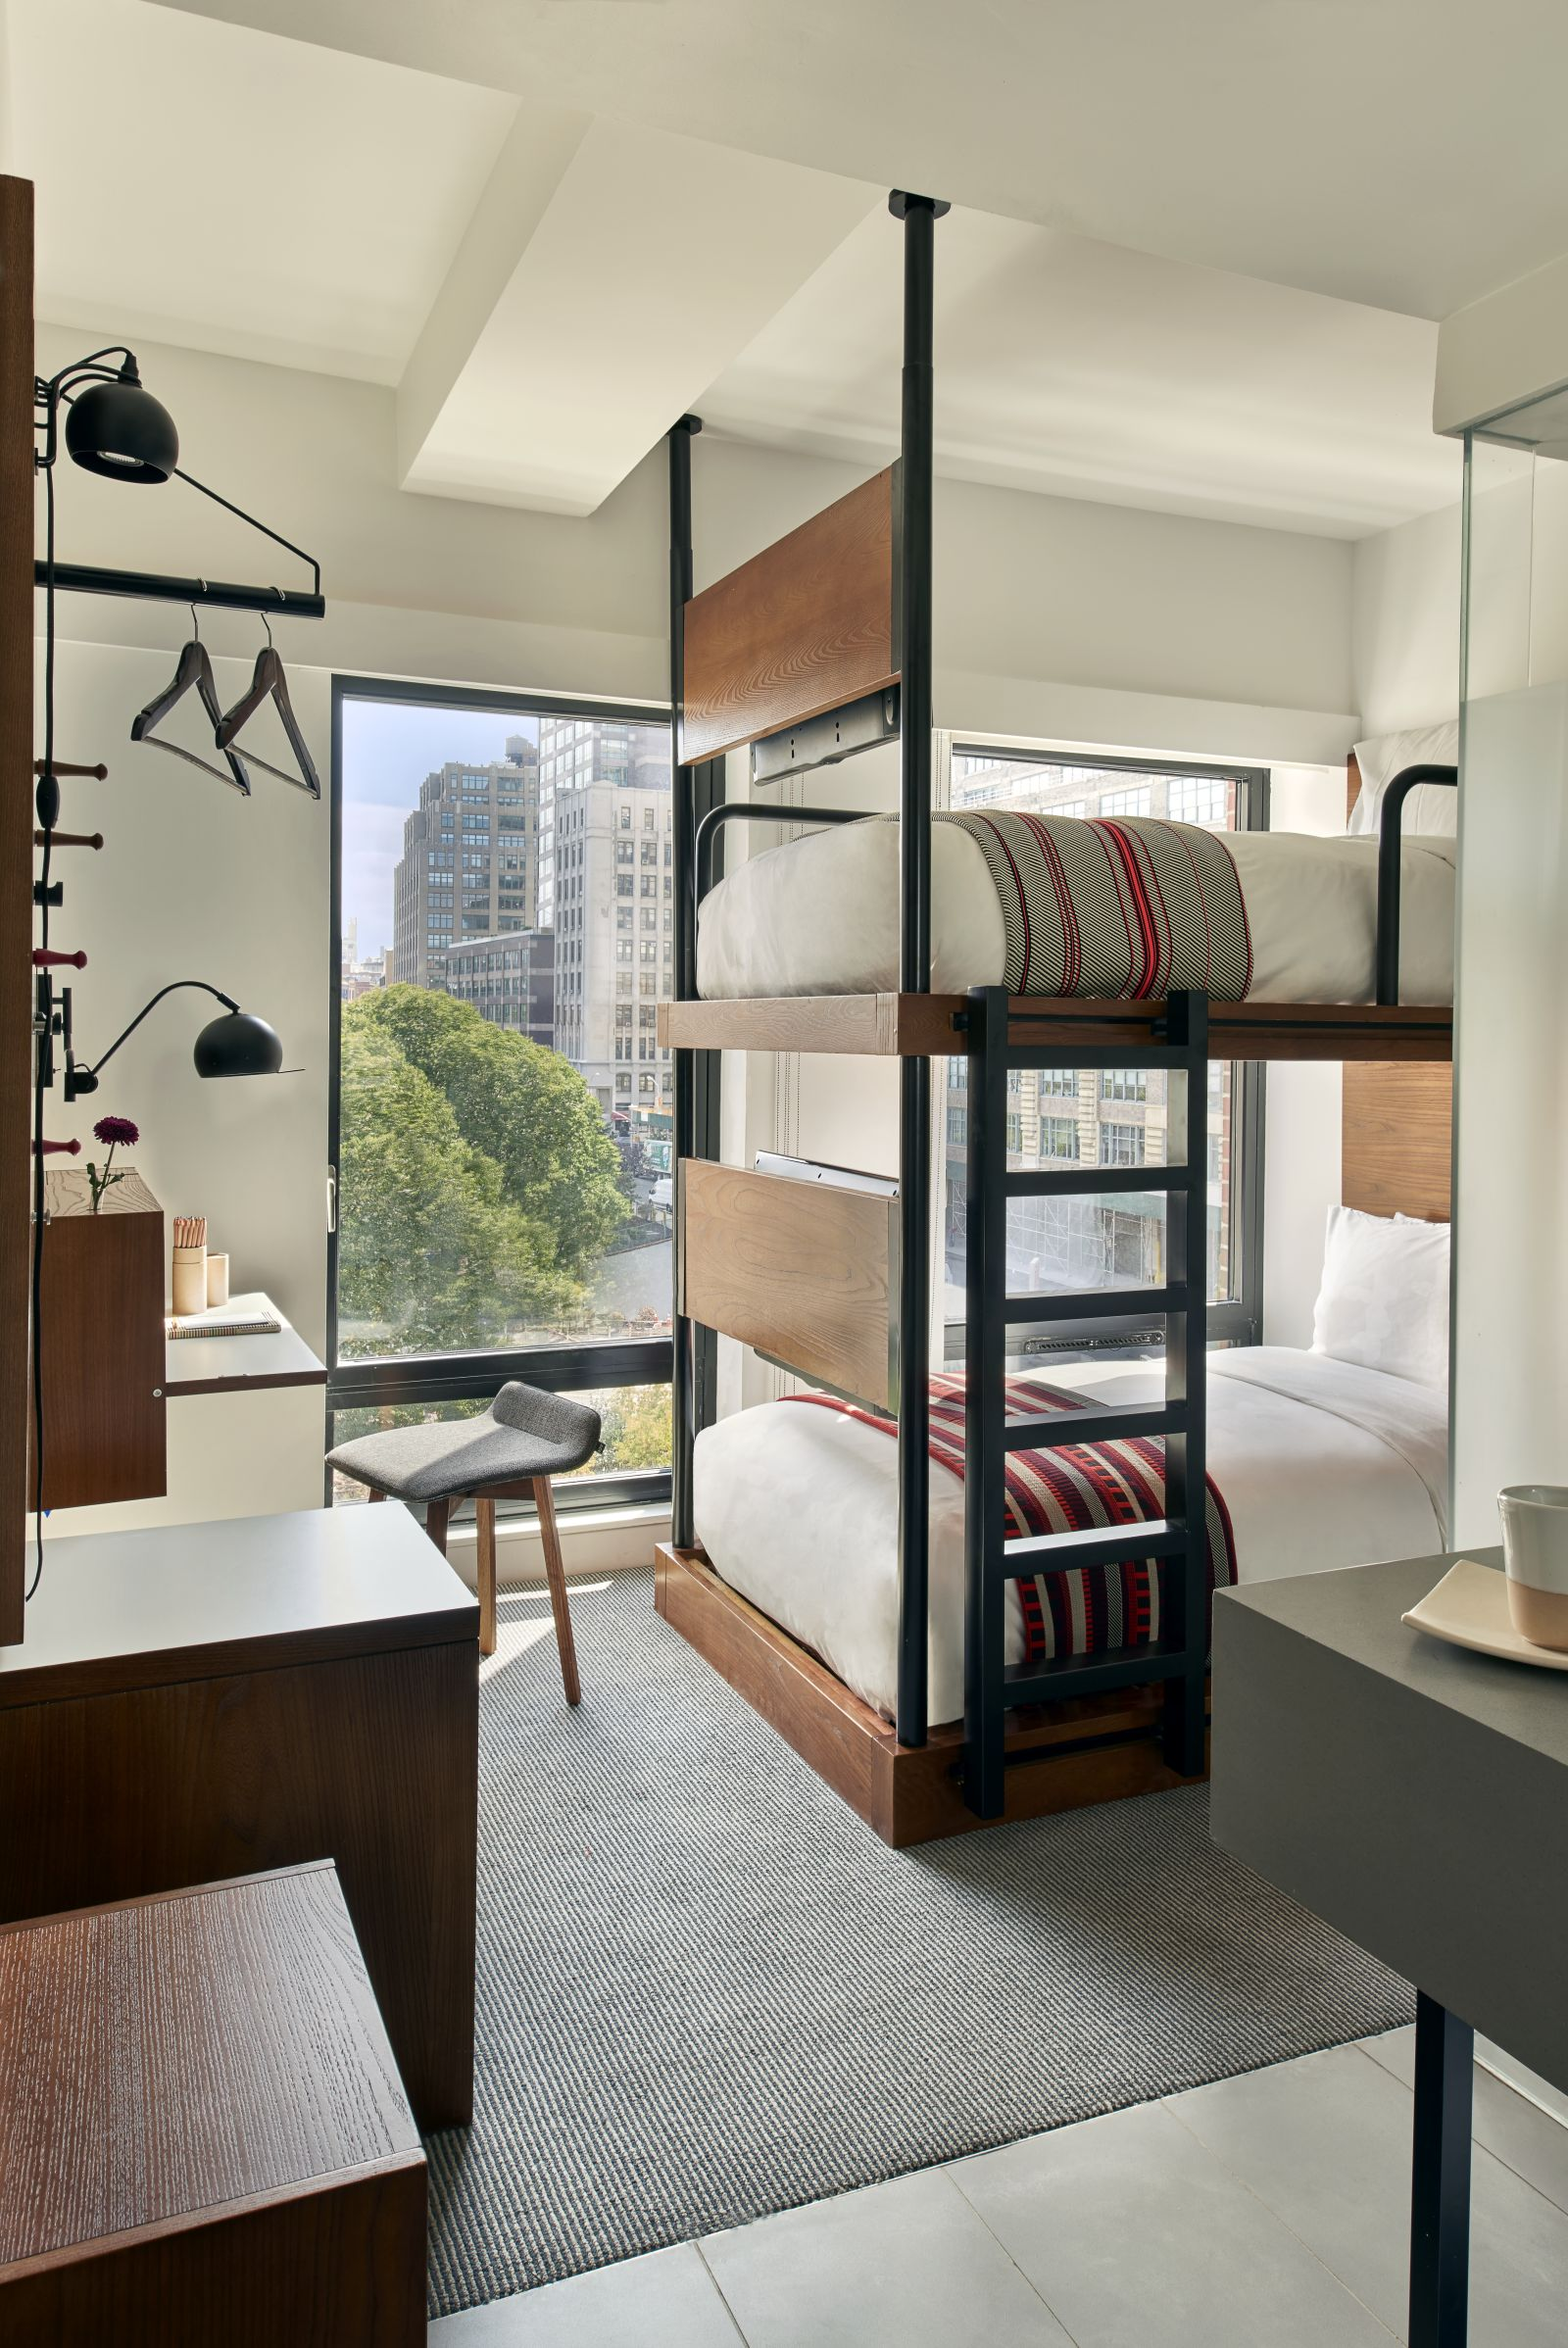 Twin Bed Hotel Room: Micro Hotel In New York